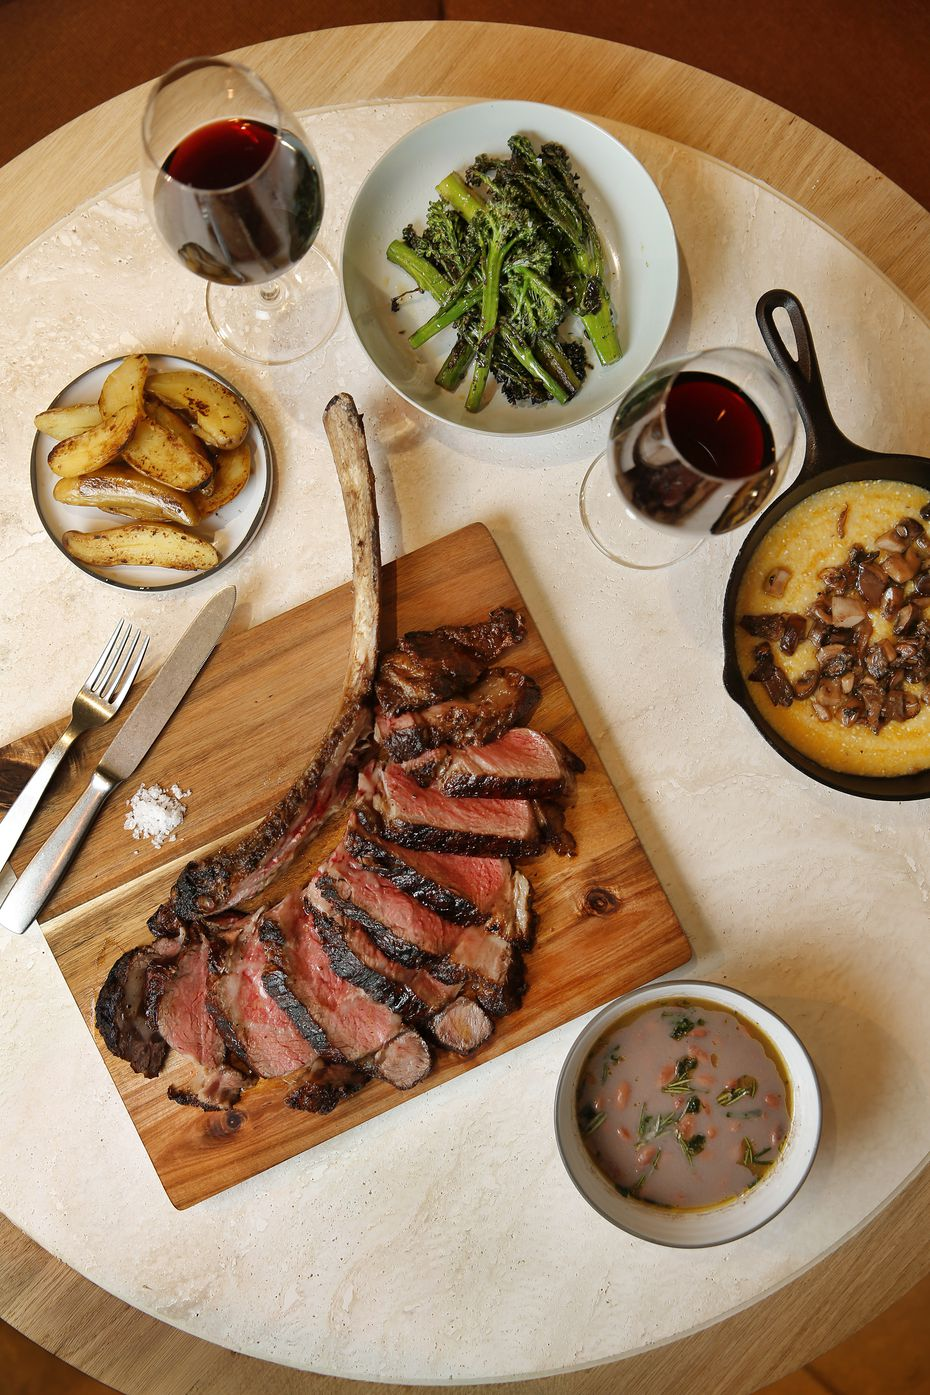 The Rib-eye Appesa is prepared with herbs, extra virgin olive oil and sea salt at Terra restaurant inside Eataly.